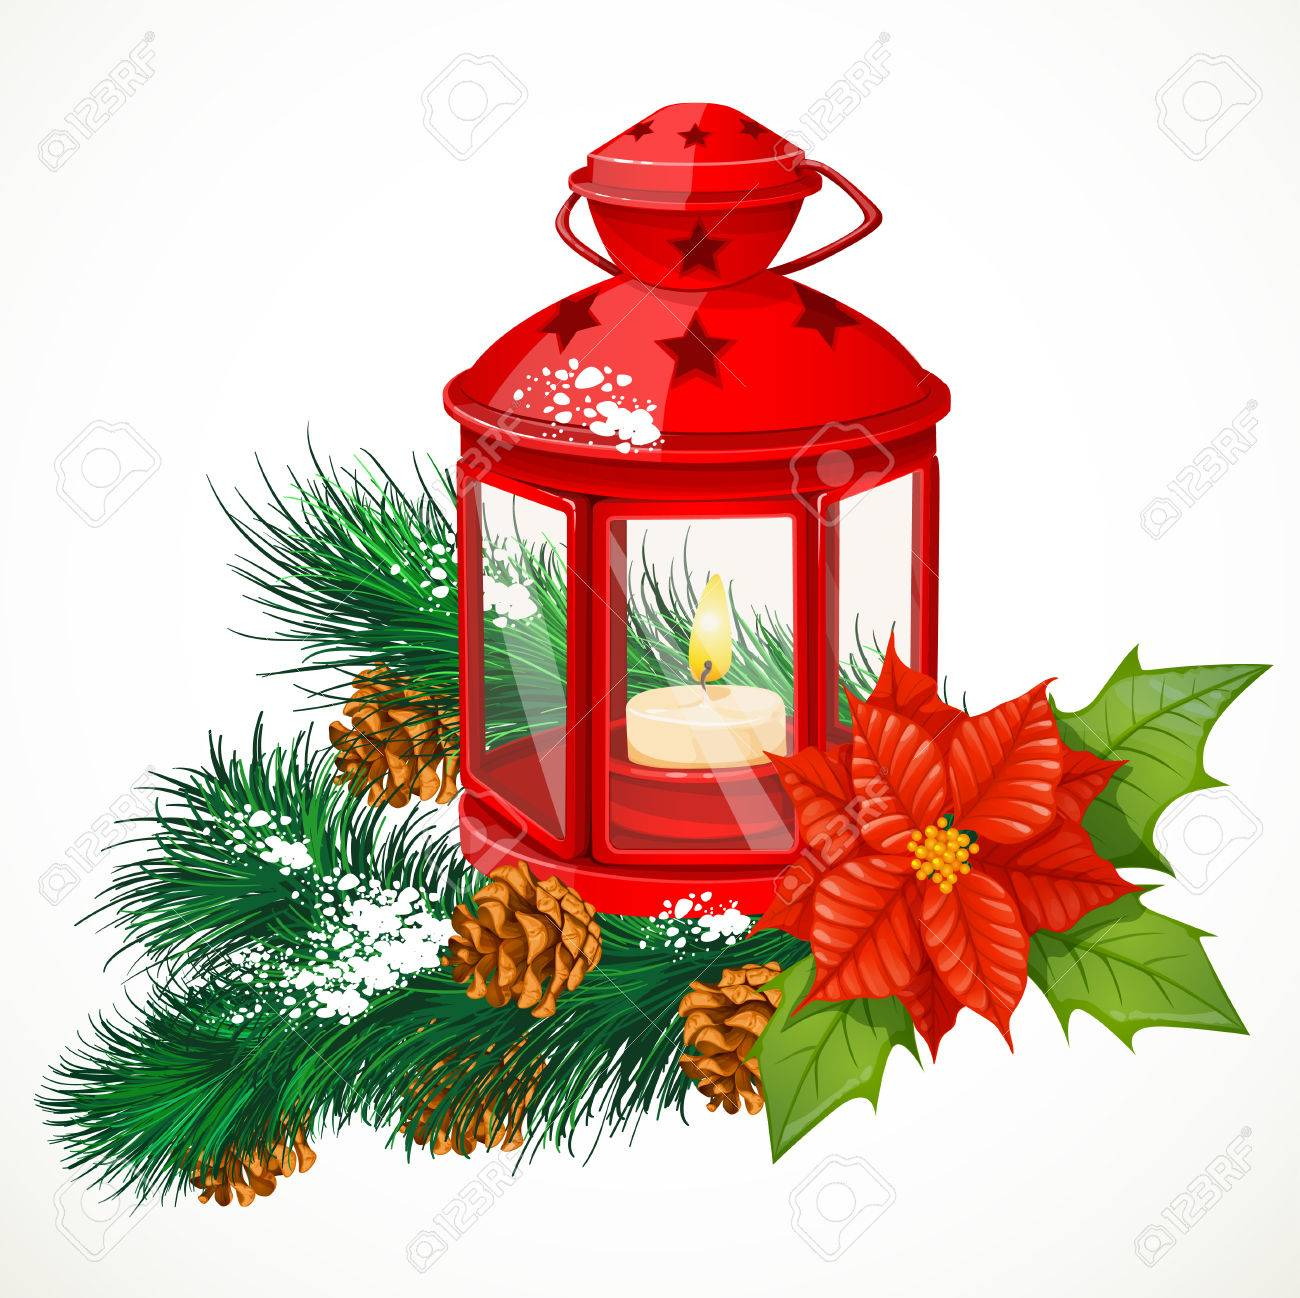 Christmas Lantern With A Candle On Spruce Branch Royalty Free ...